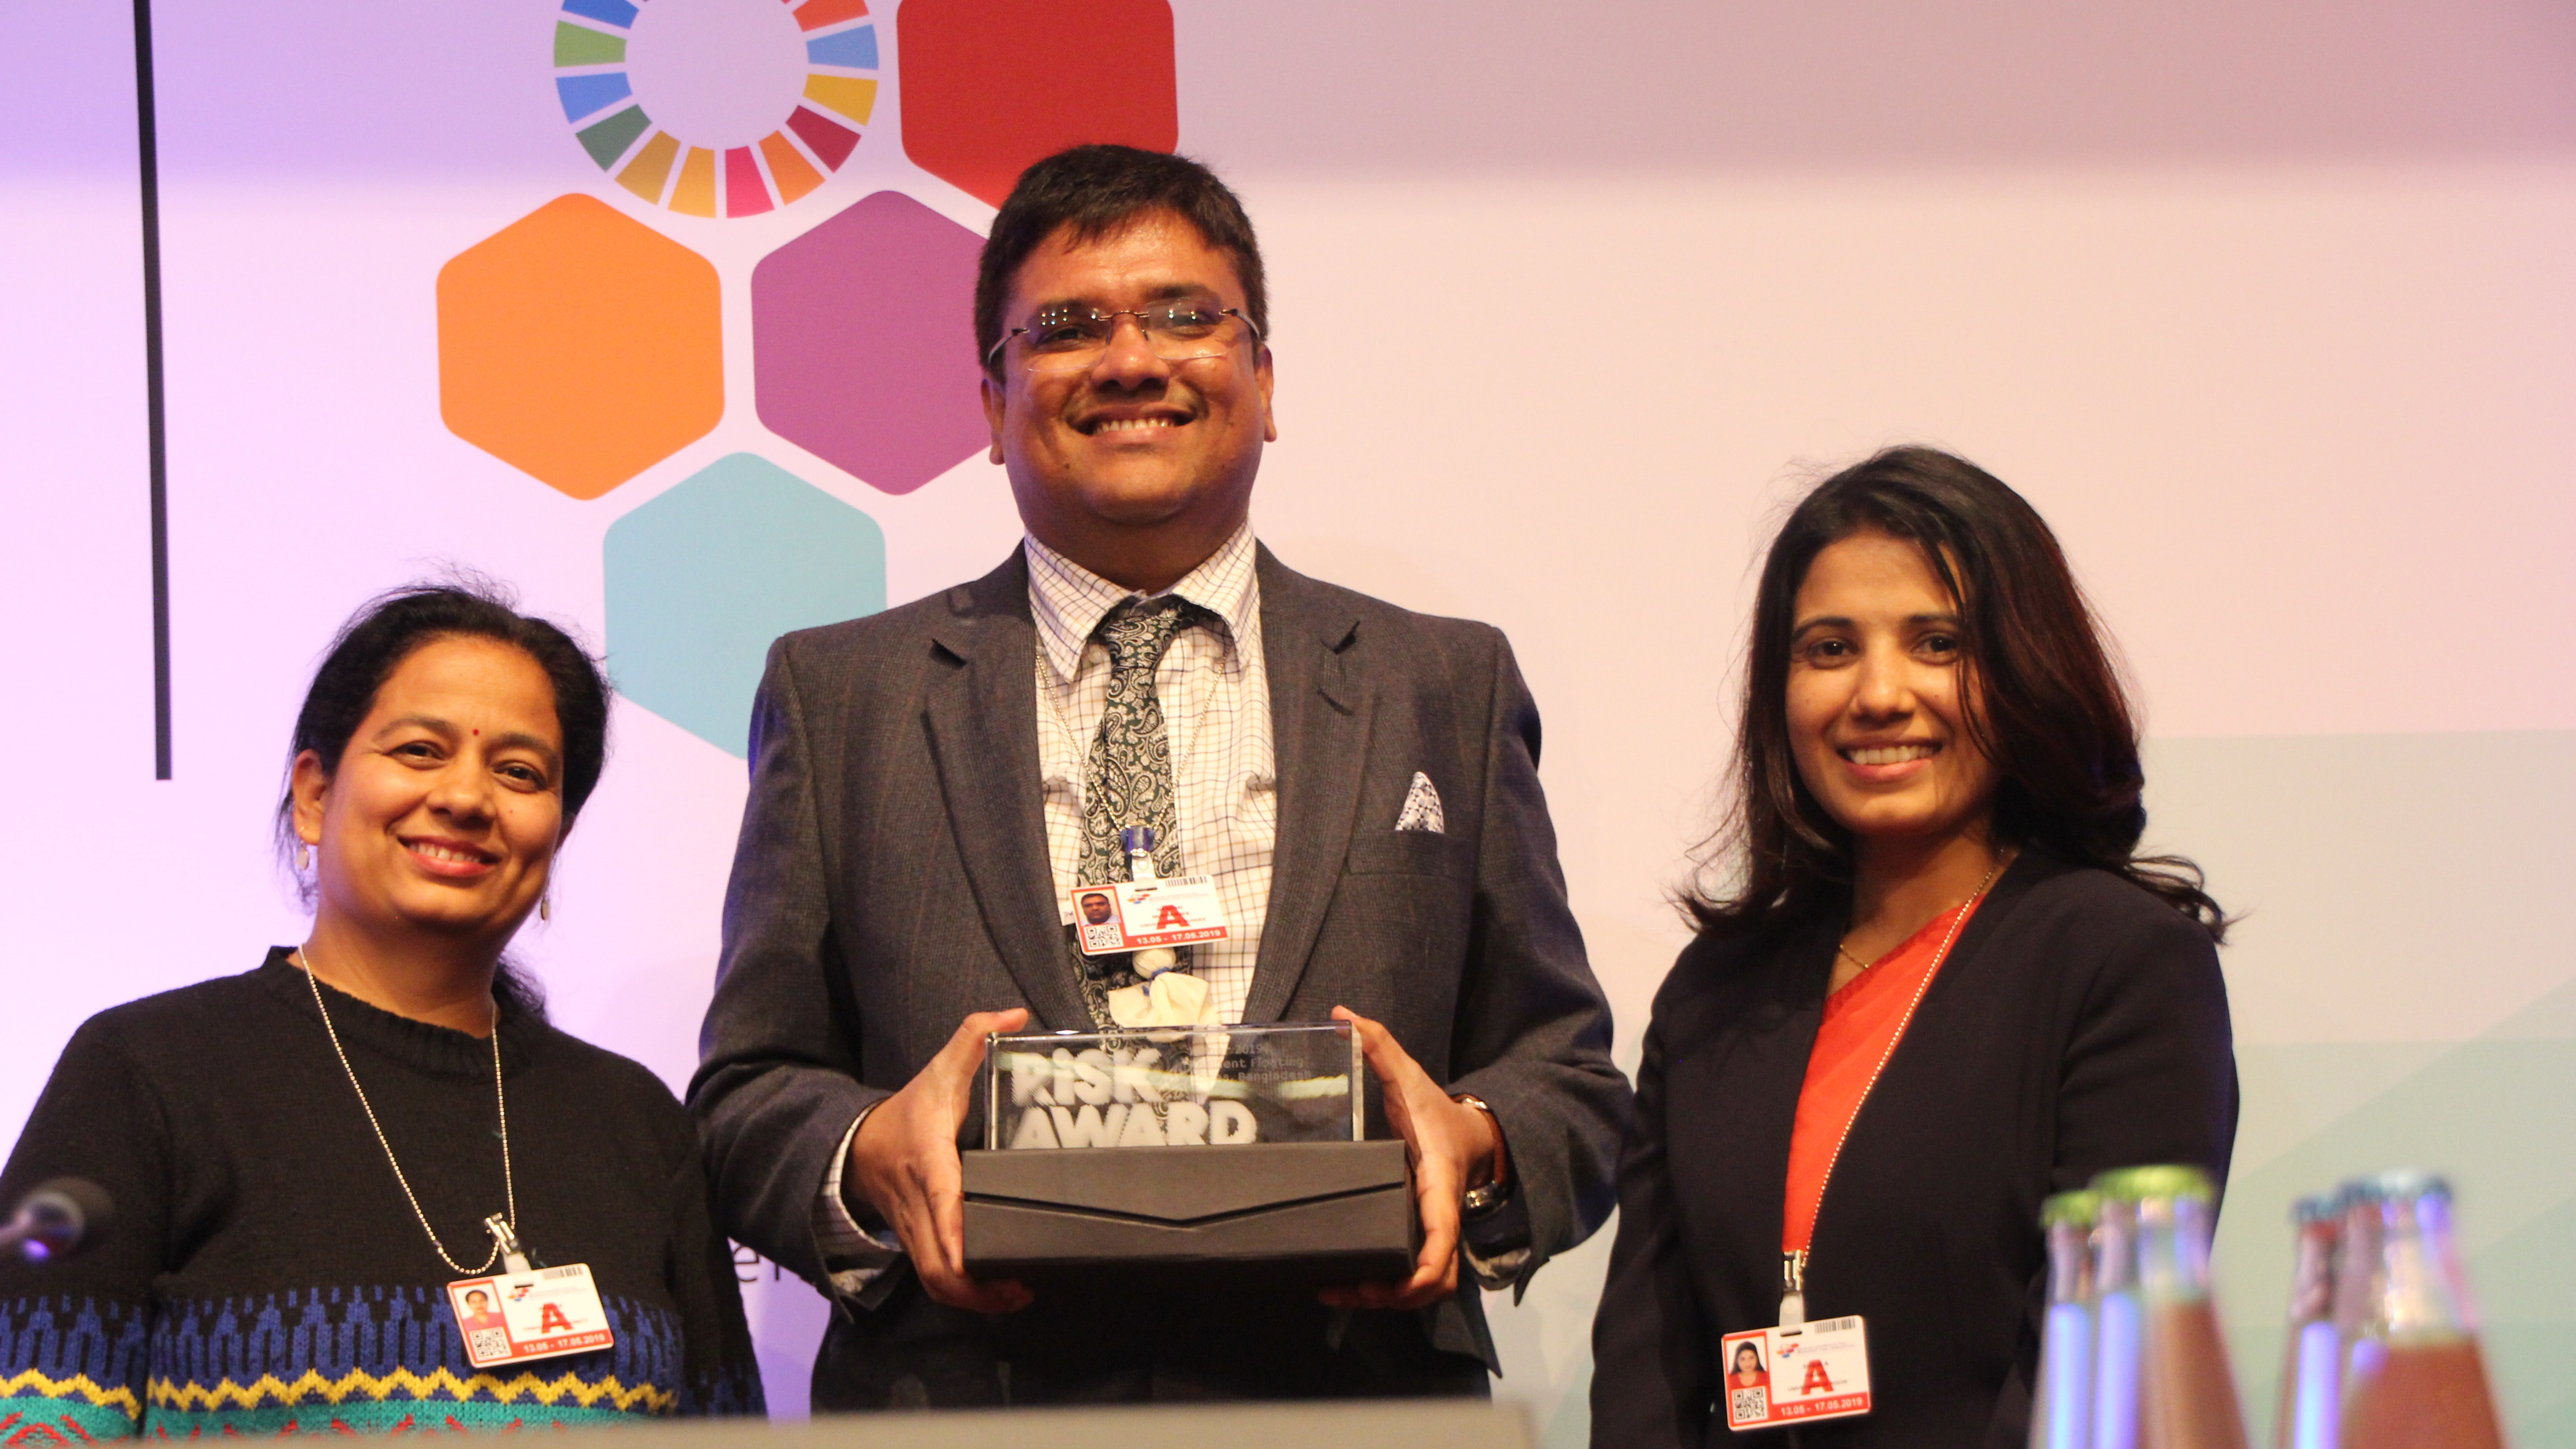 Nandan Mukherjee, winner of the RISK Award 2019, together with Apsara Pandey and Sushila Pandel, winners of the RISK Award 2017.